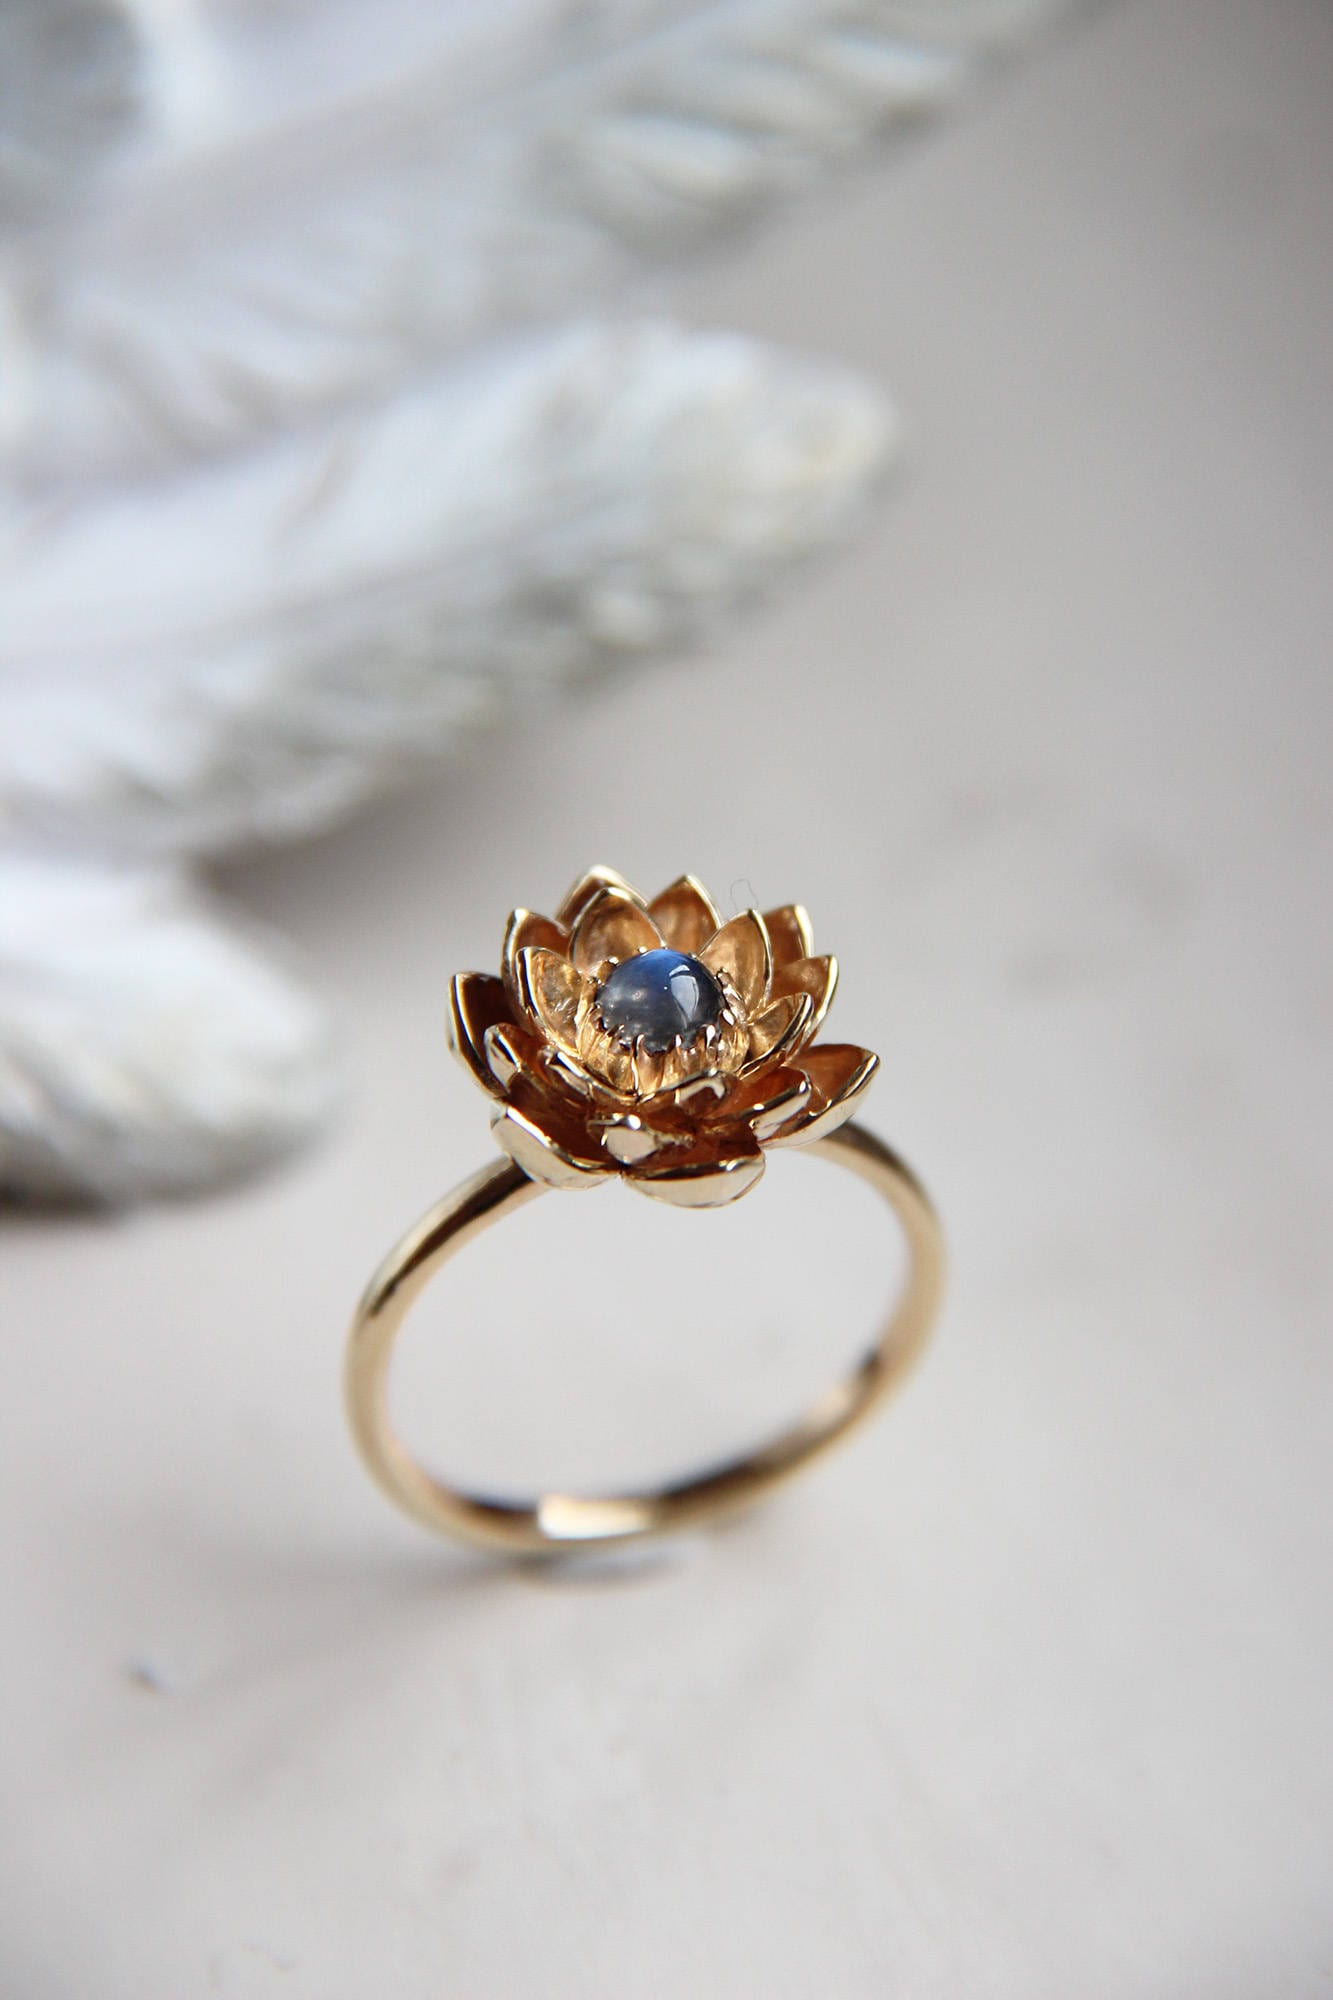 the best blooming images bloomingring on rings ring diamond lotus flower engagement art carved rose collection